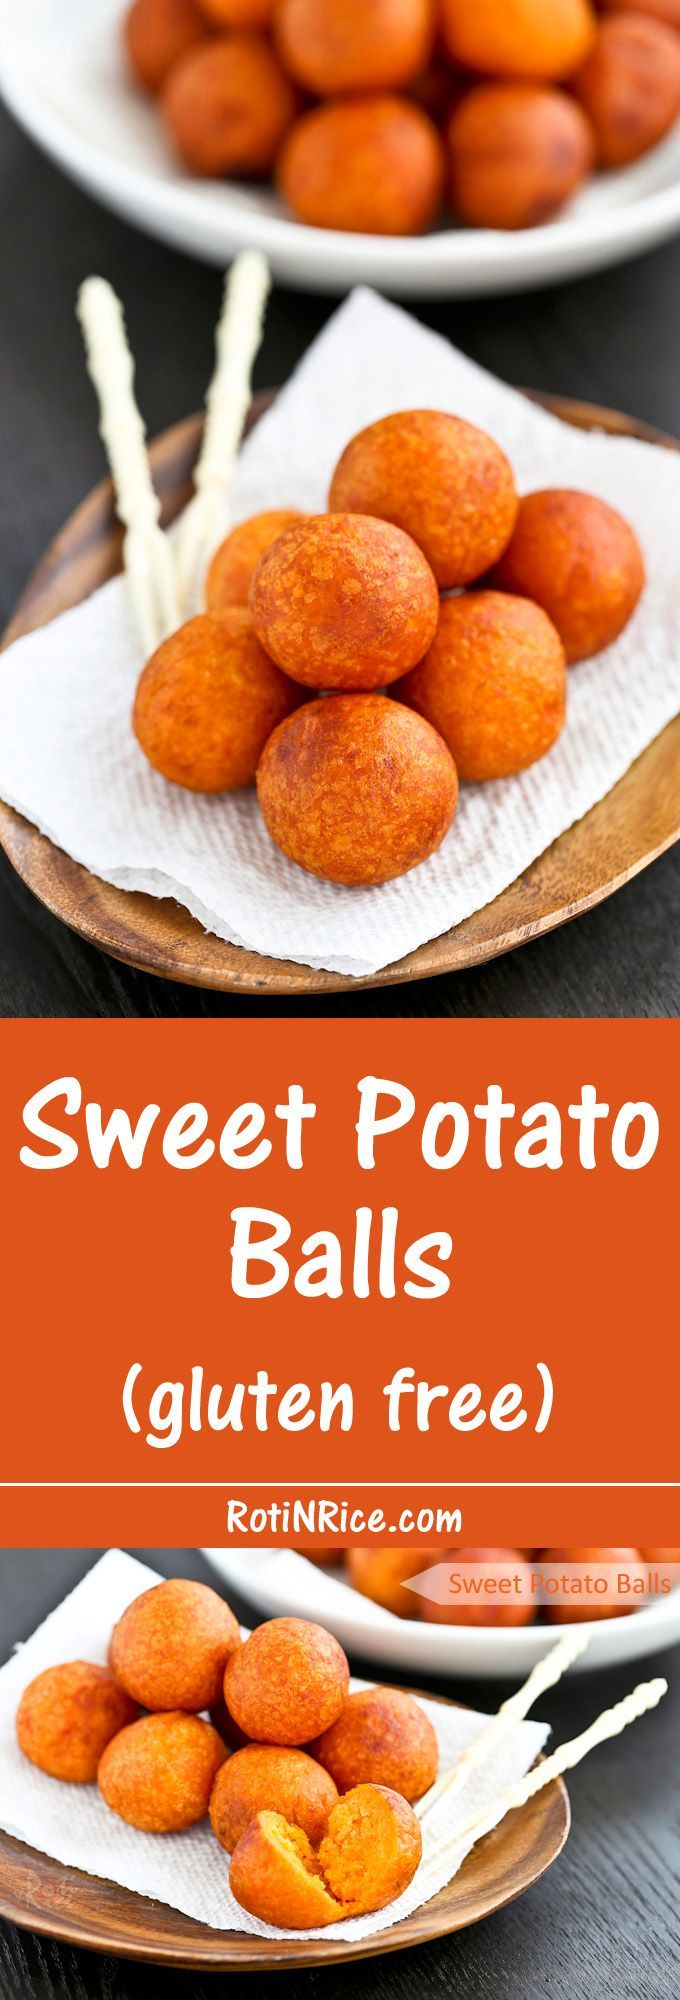 Only a few simple ingredients used in these gluten free Sweet Potato Balls deep fried to golden perfection. They make a tasty tea time or snack time treat.   Food to gladden the heart at RotiNRice.com